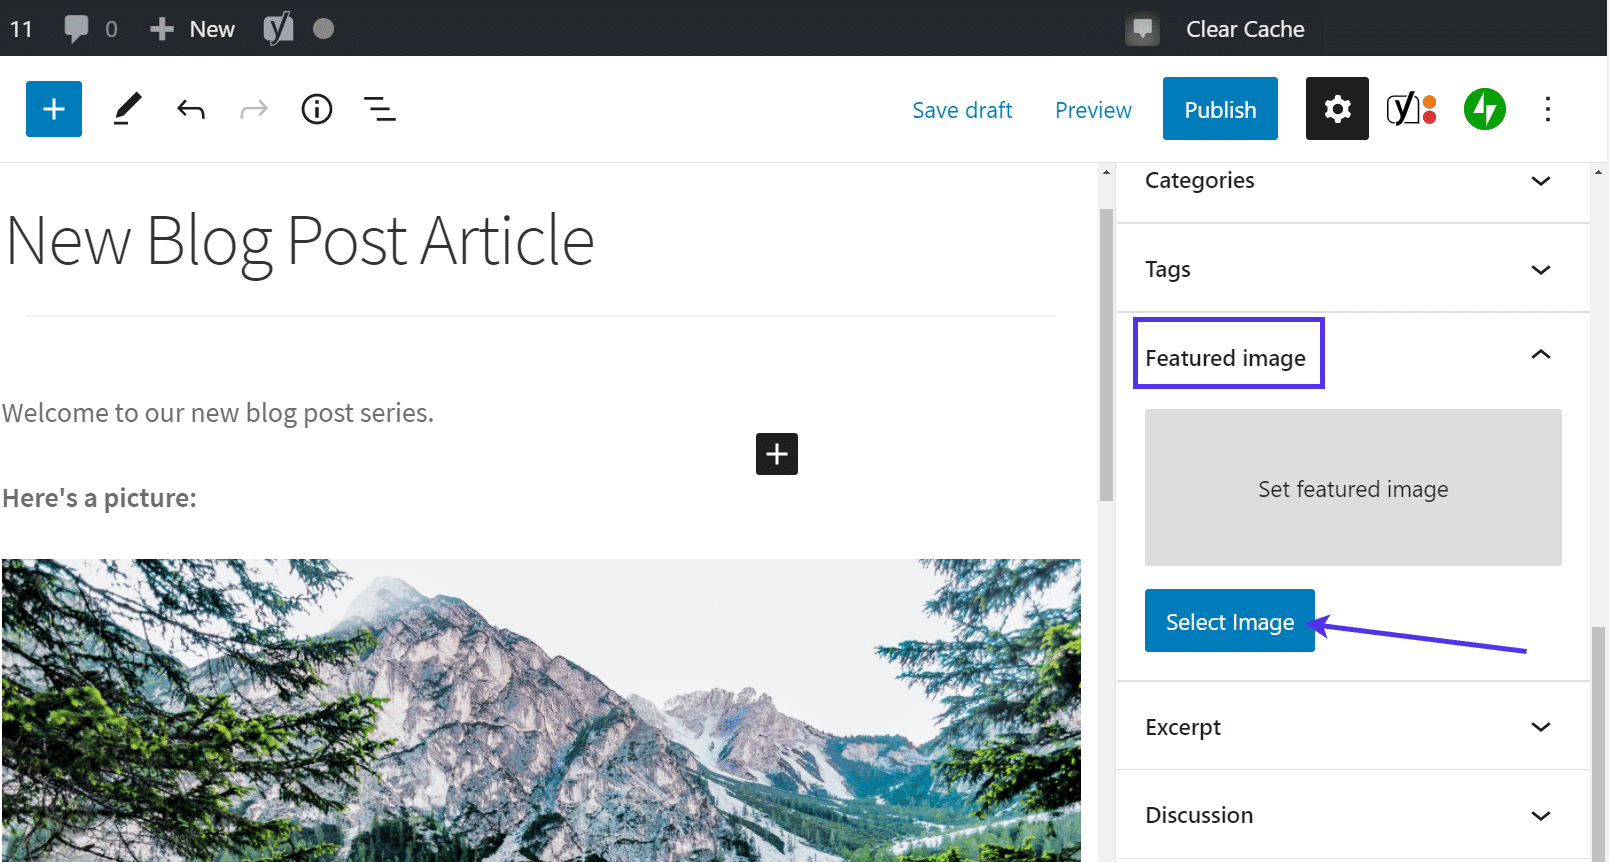 Click on 'Select Image' in the Featured Image tab